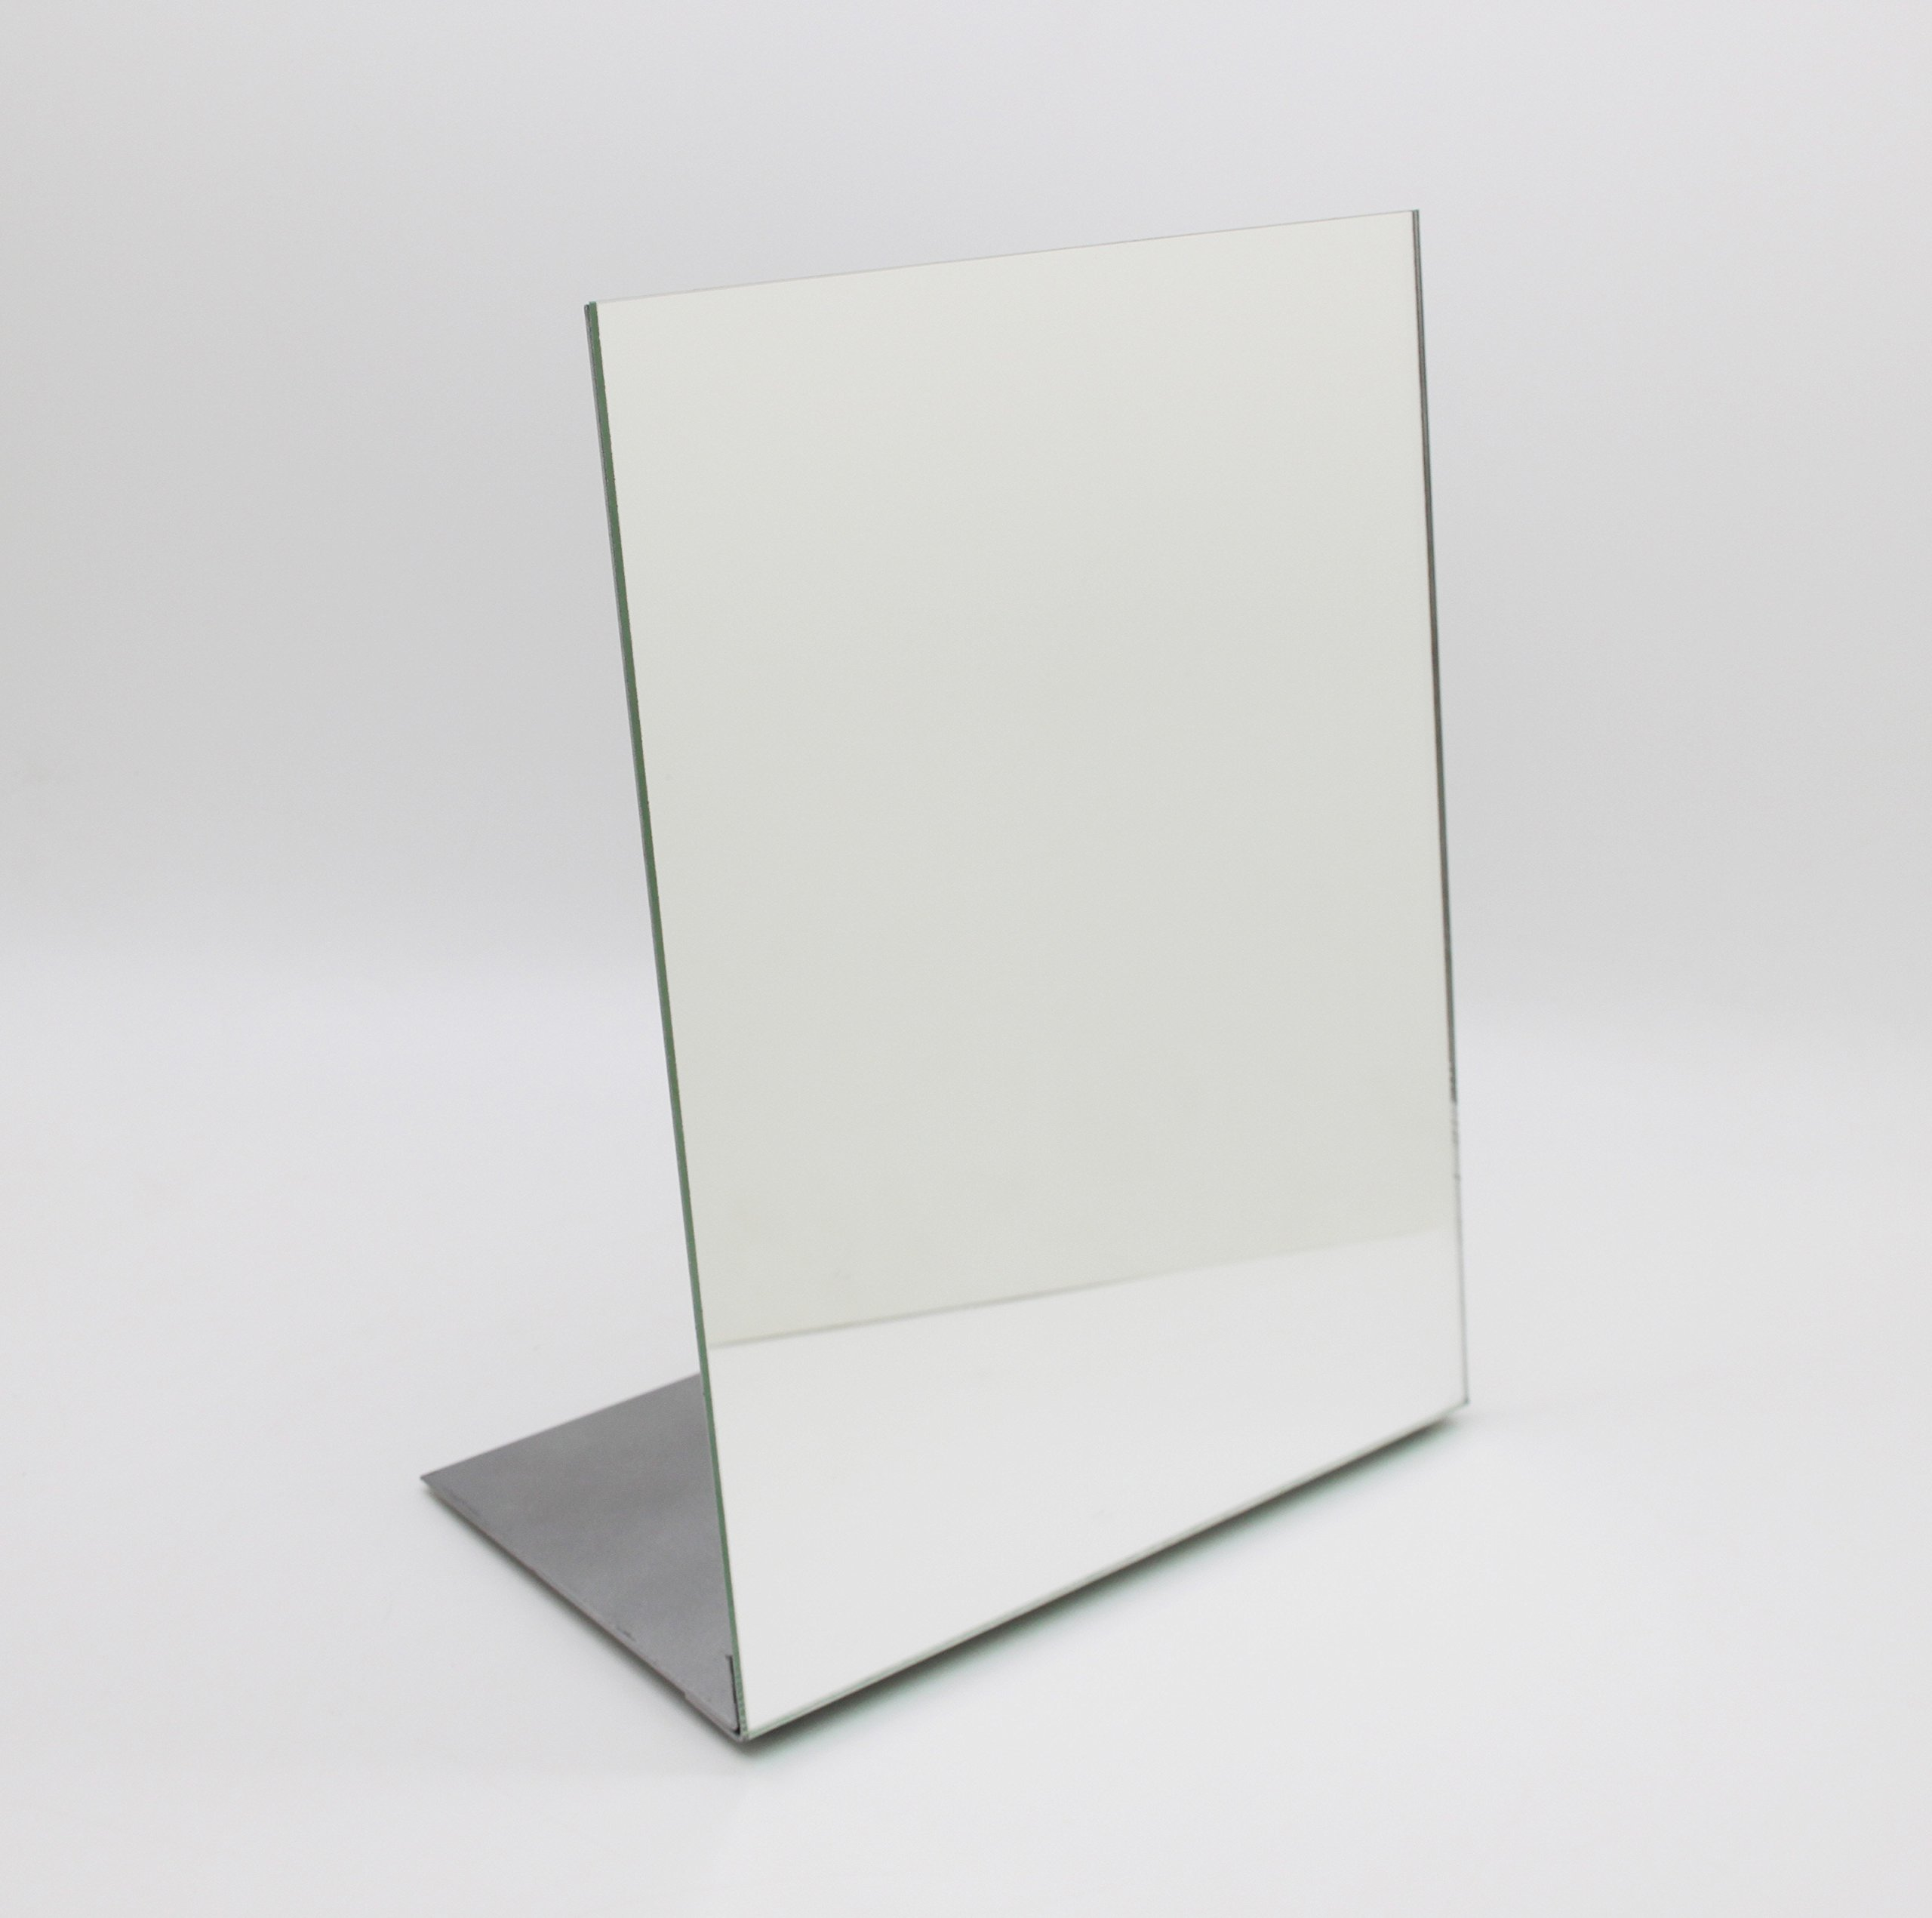 "FixtureDisplays 8.5x10.8"" Metal Retail Make-up Glass Mirror 15948! - FixtureDisplays 8.5 x 11"" Self-Portrait Slanted Metal Retail Make up Glass Mirror. Use at home,trade shows, office, retail stores for make up or jewelry, spas! This metal/glass mirror weighs 3.3 lbs. Easily assembled or to knock down for travel. An end to the problems with hand-held or flimsy, small mirrors that won't stay straight. 8.5"" x 11"" glass mirror mounted on carbon steel frame. Steel is powder coated silver in color. Steel base is 4.5"" wide for superior stability. Leans slightly (78 degree) back for ease of observation. Overall dimmensions: 8.5"" W x 10.8"" H x 4.5"" depth. Shipping to Canada and Mexico: import duty and fees apply. - mirrors-bedroom-decor, bedroom-decor, bedroom - 8137VfV%2B9VL -"